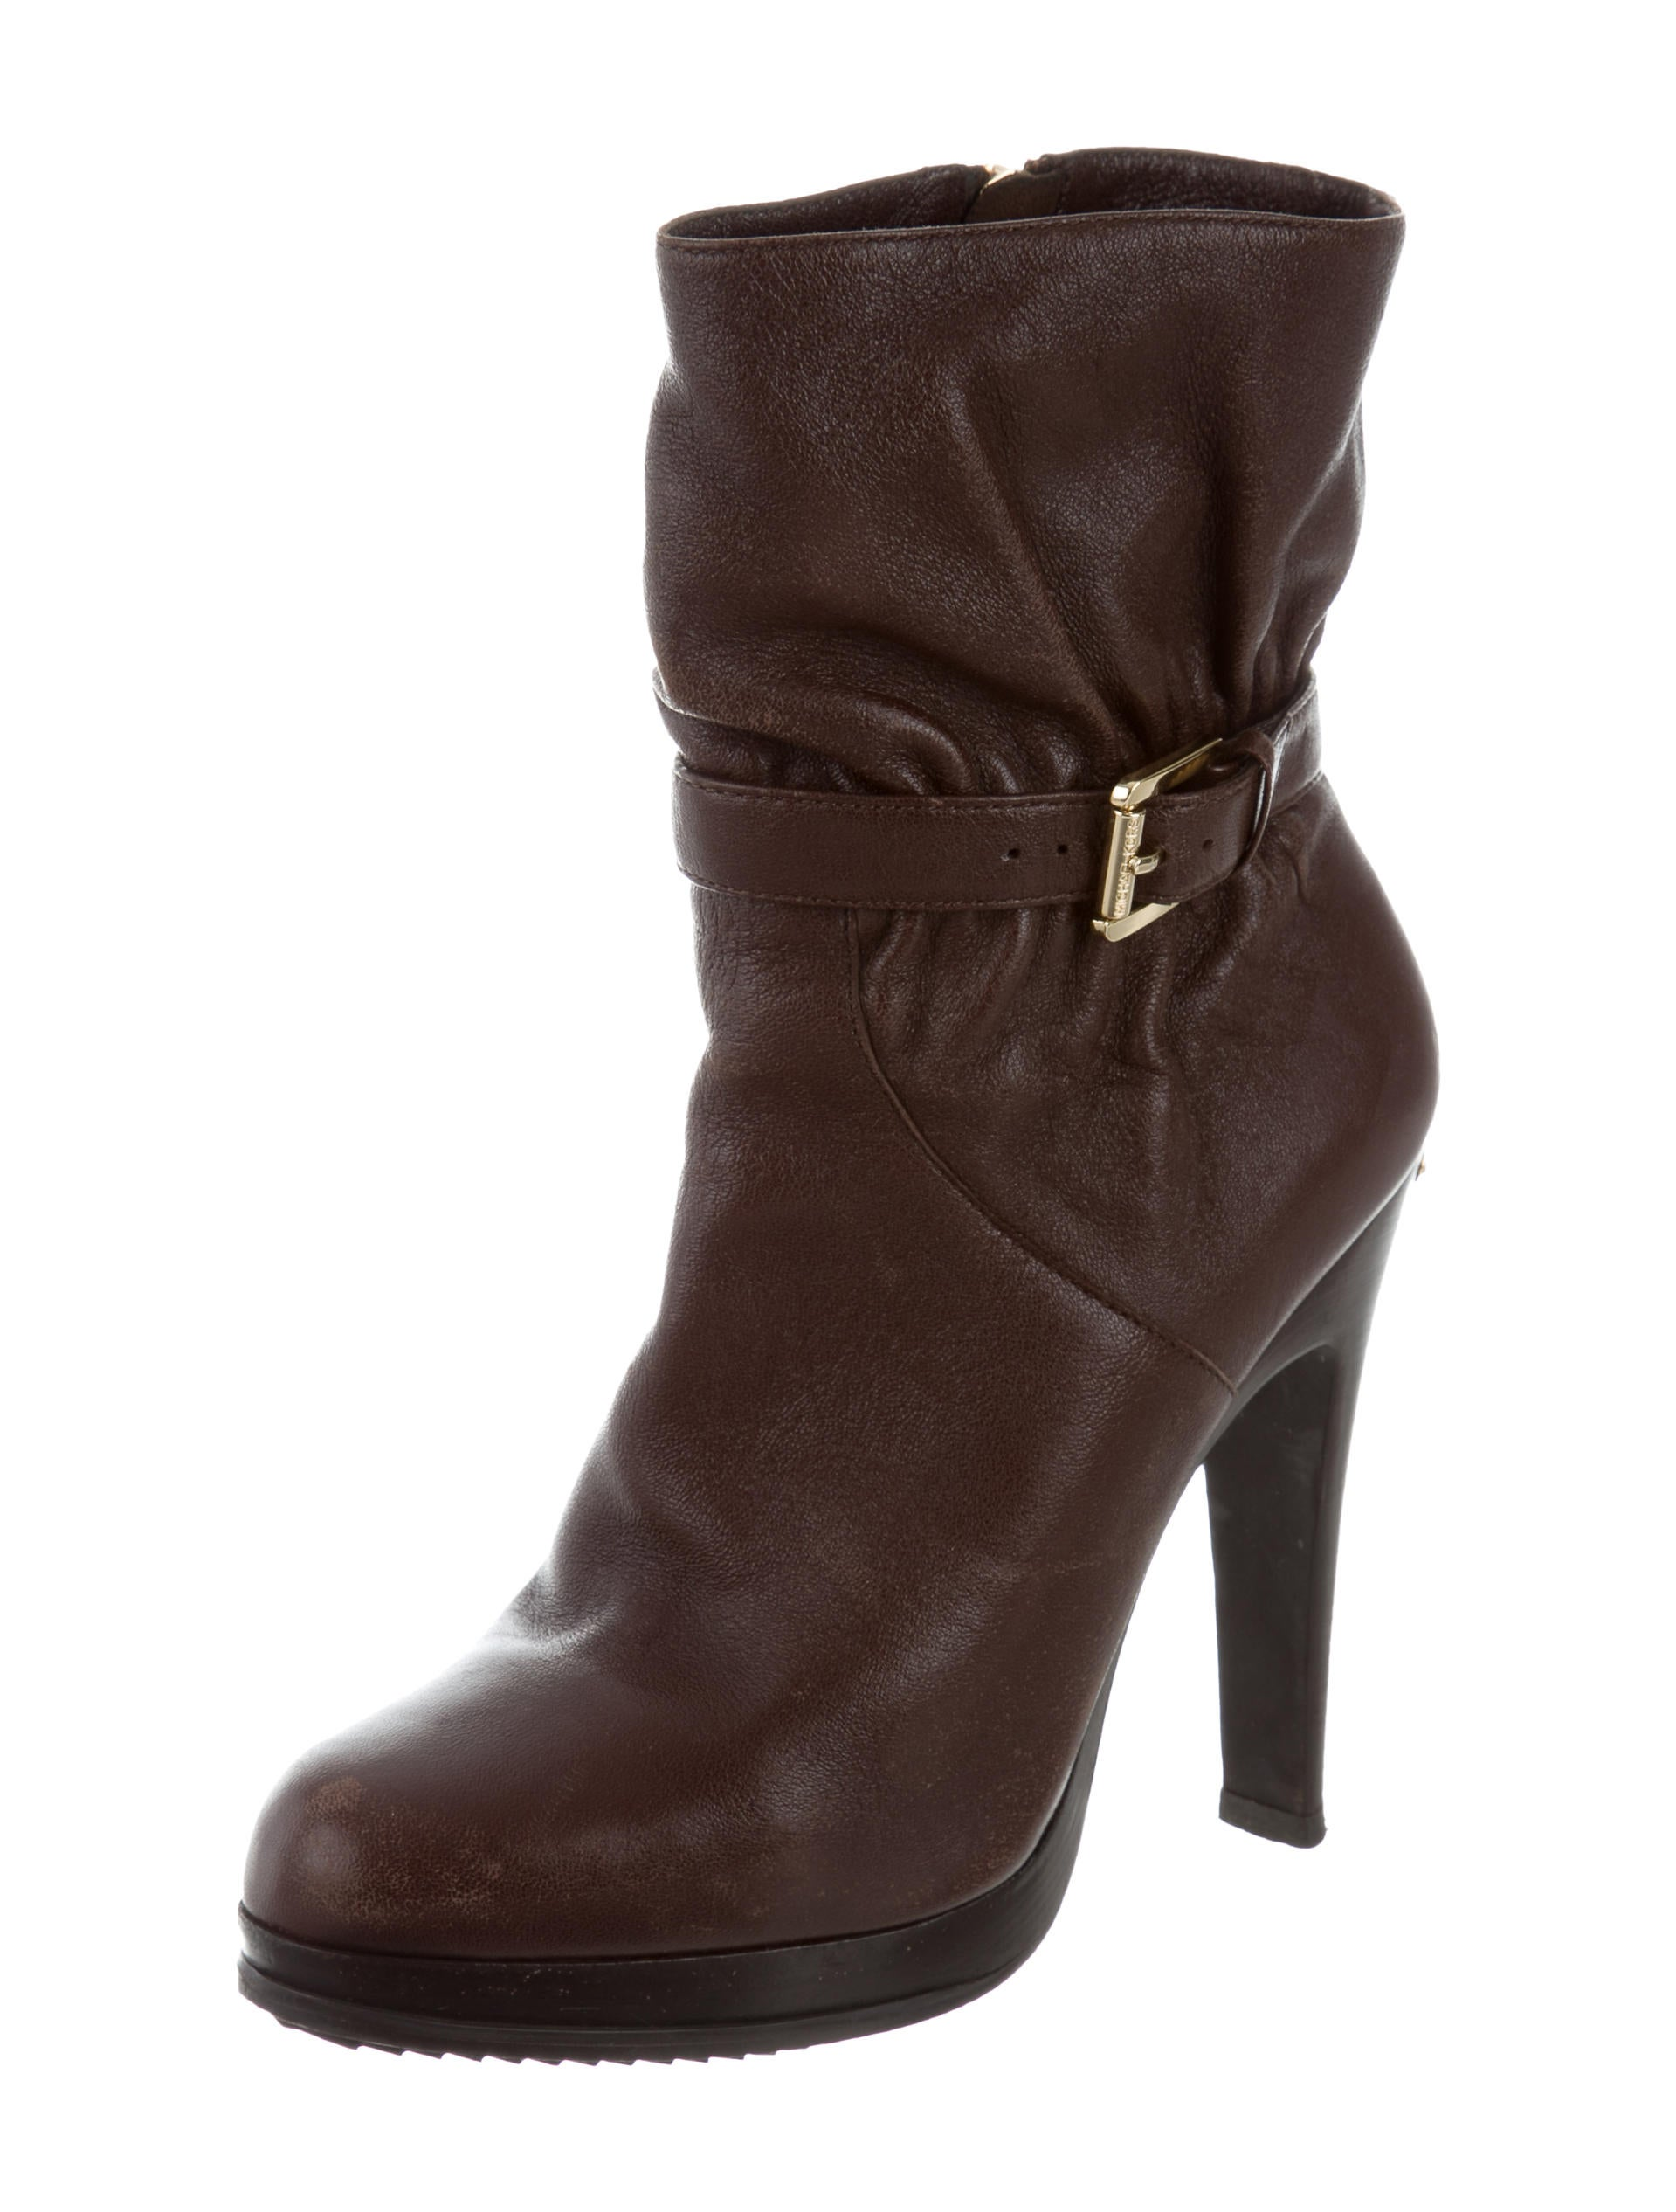 michael michael kors ruched ankle boots shoes wm521937